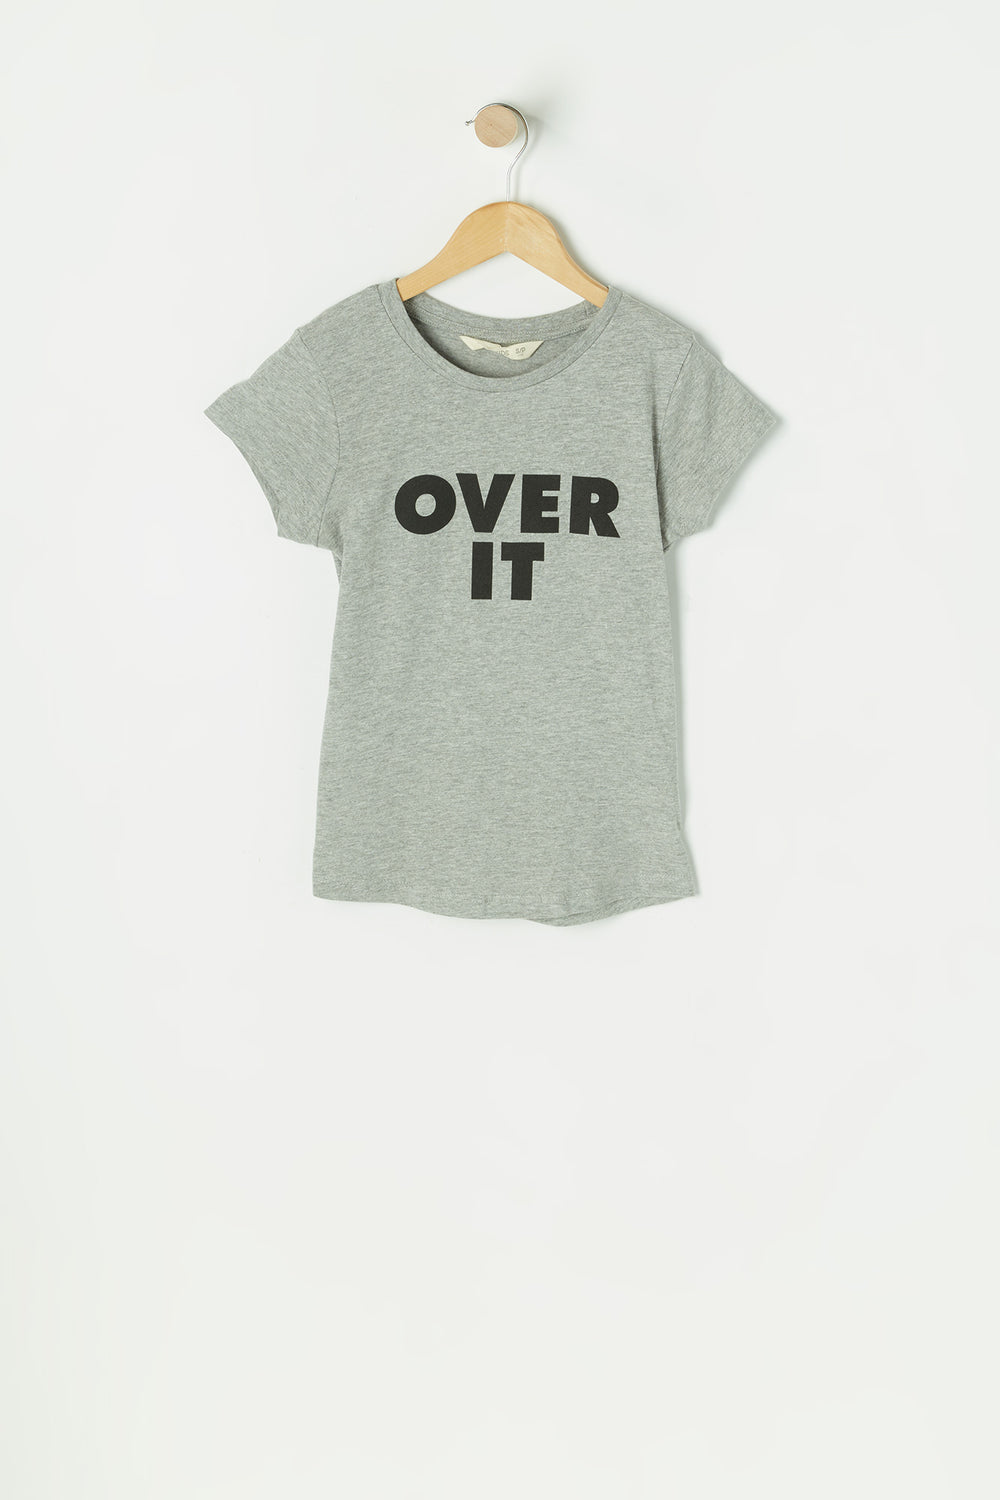 Girls Grey Over It Graphic T-Shirt Heather Grey